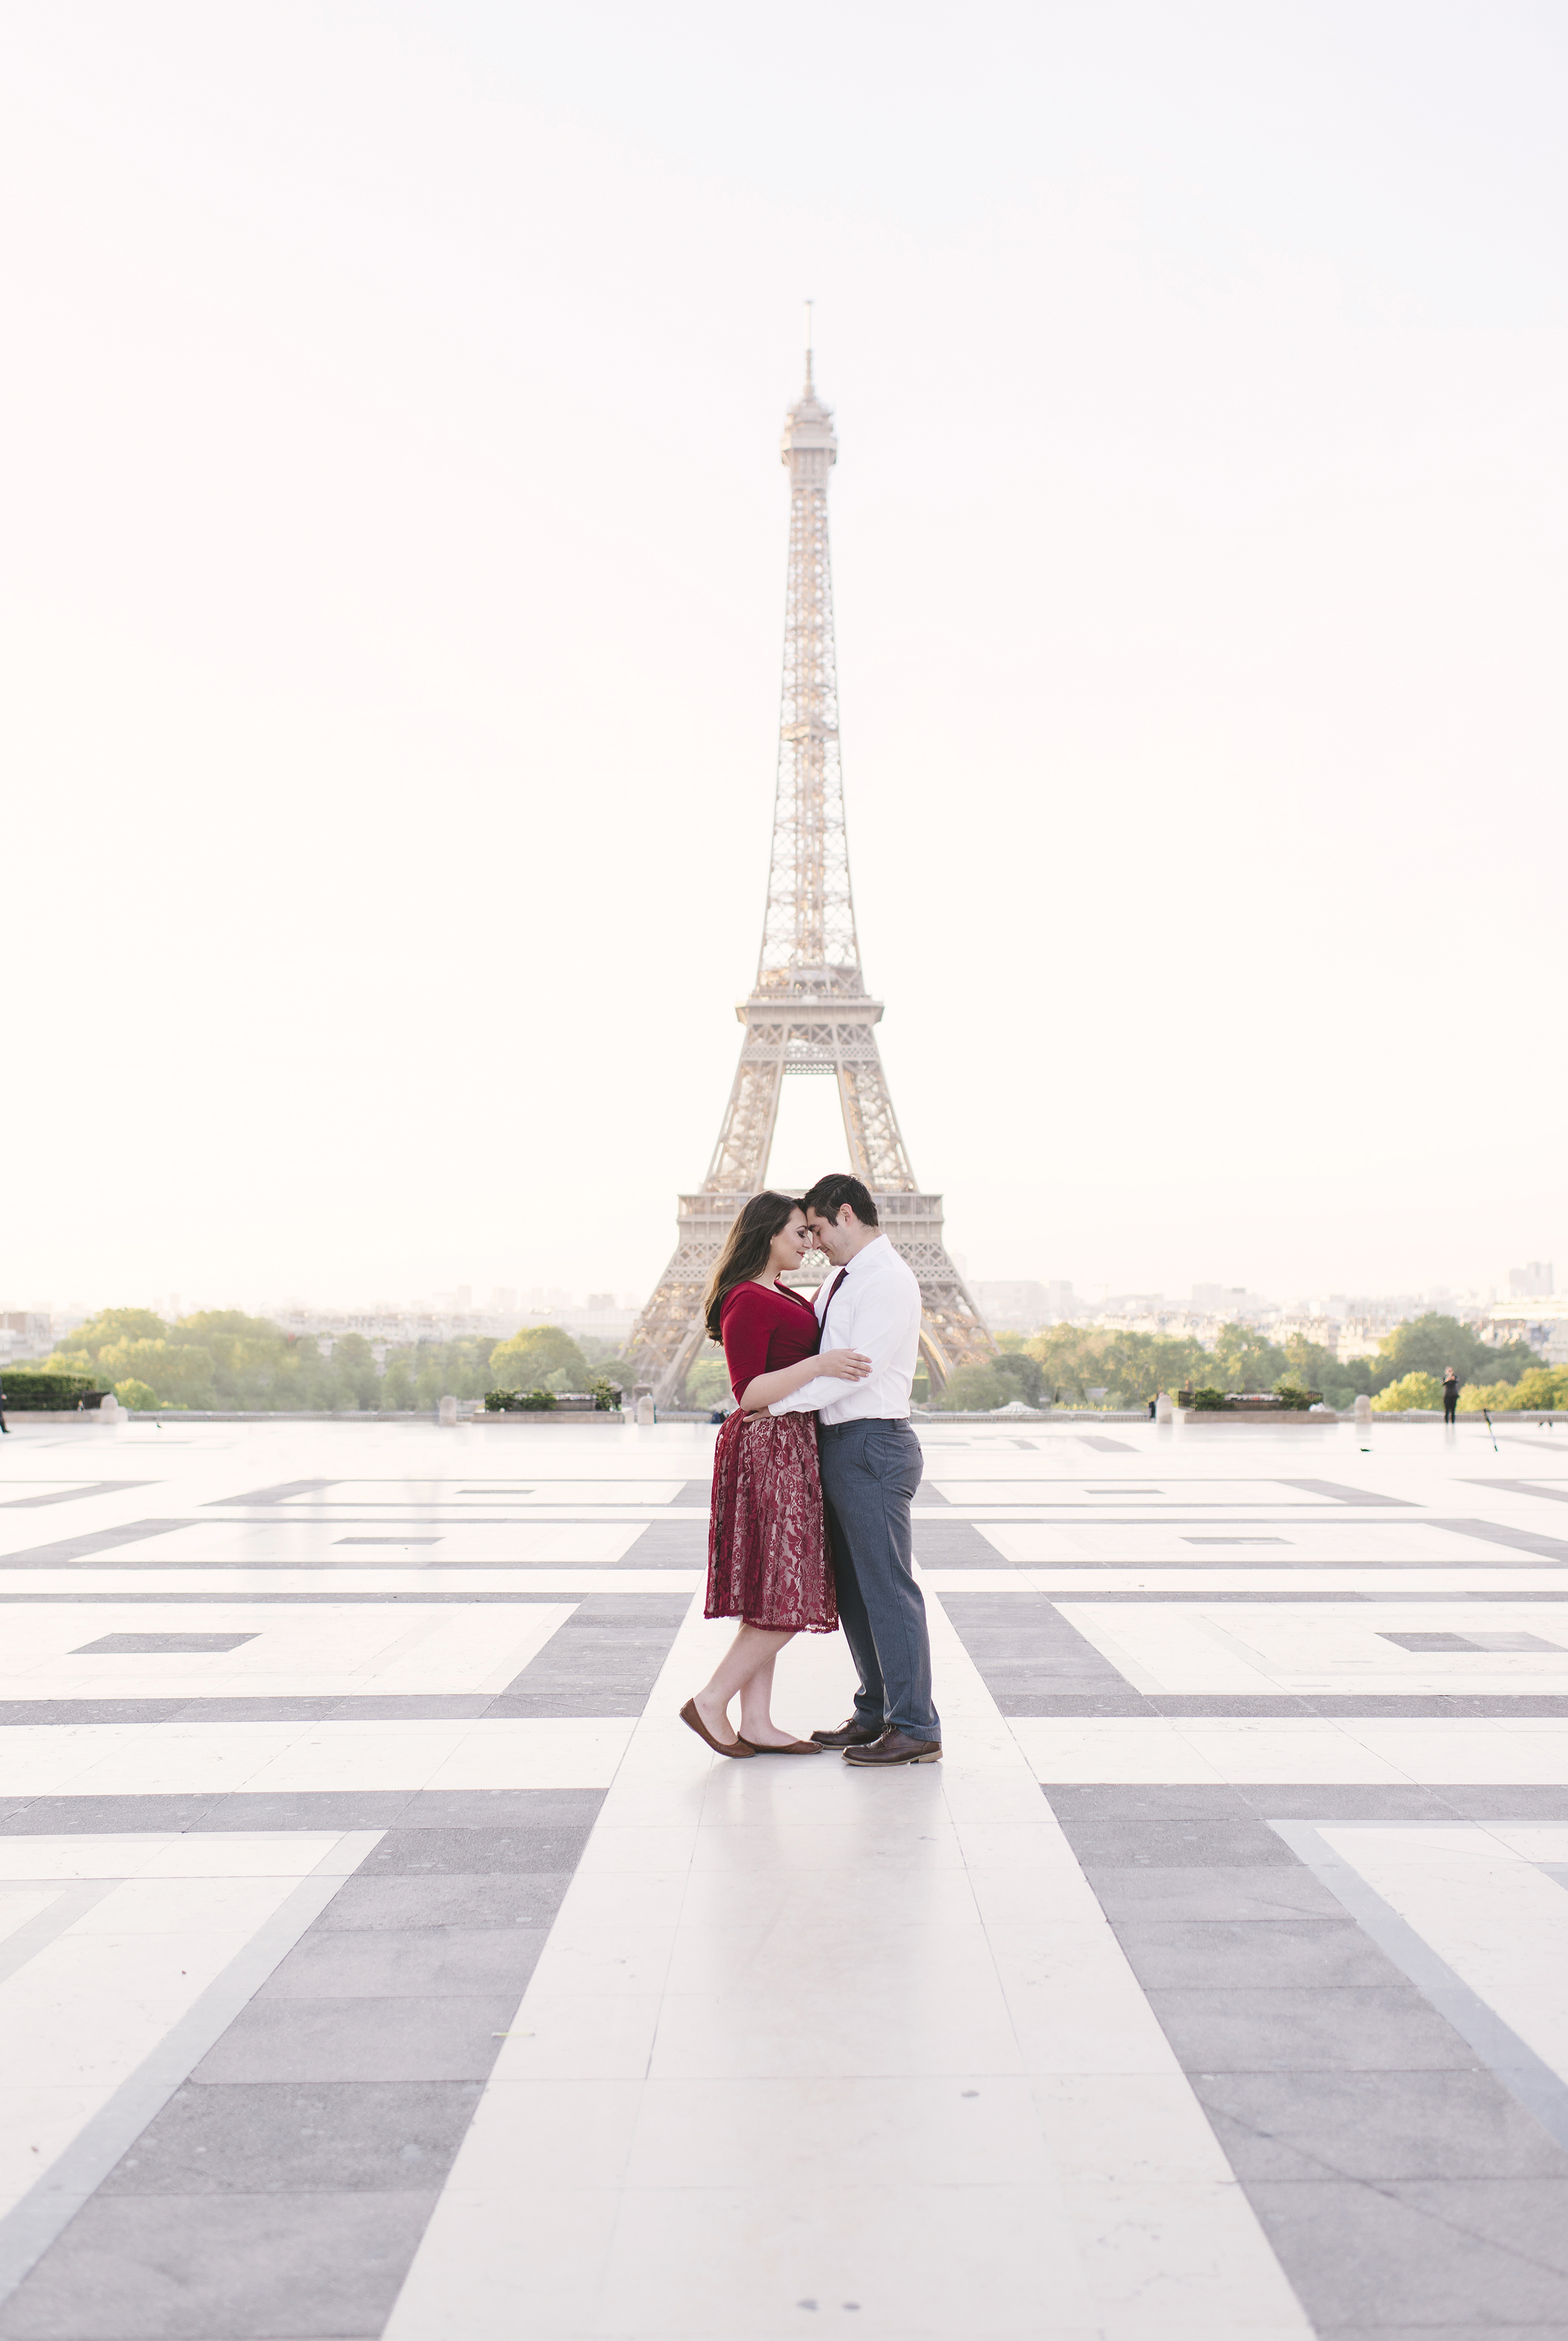 Couple-photoshoot-Anniversary-Paris-Eiffel-Tower-Trocadero011.jpg